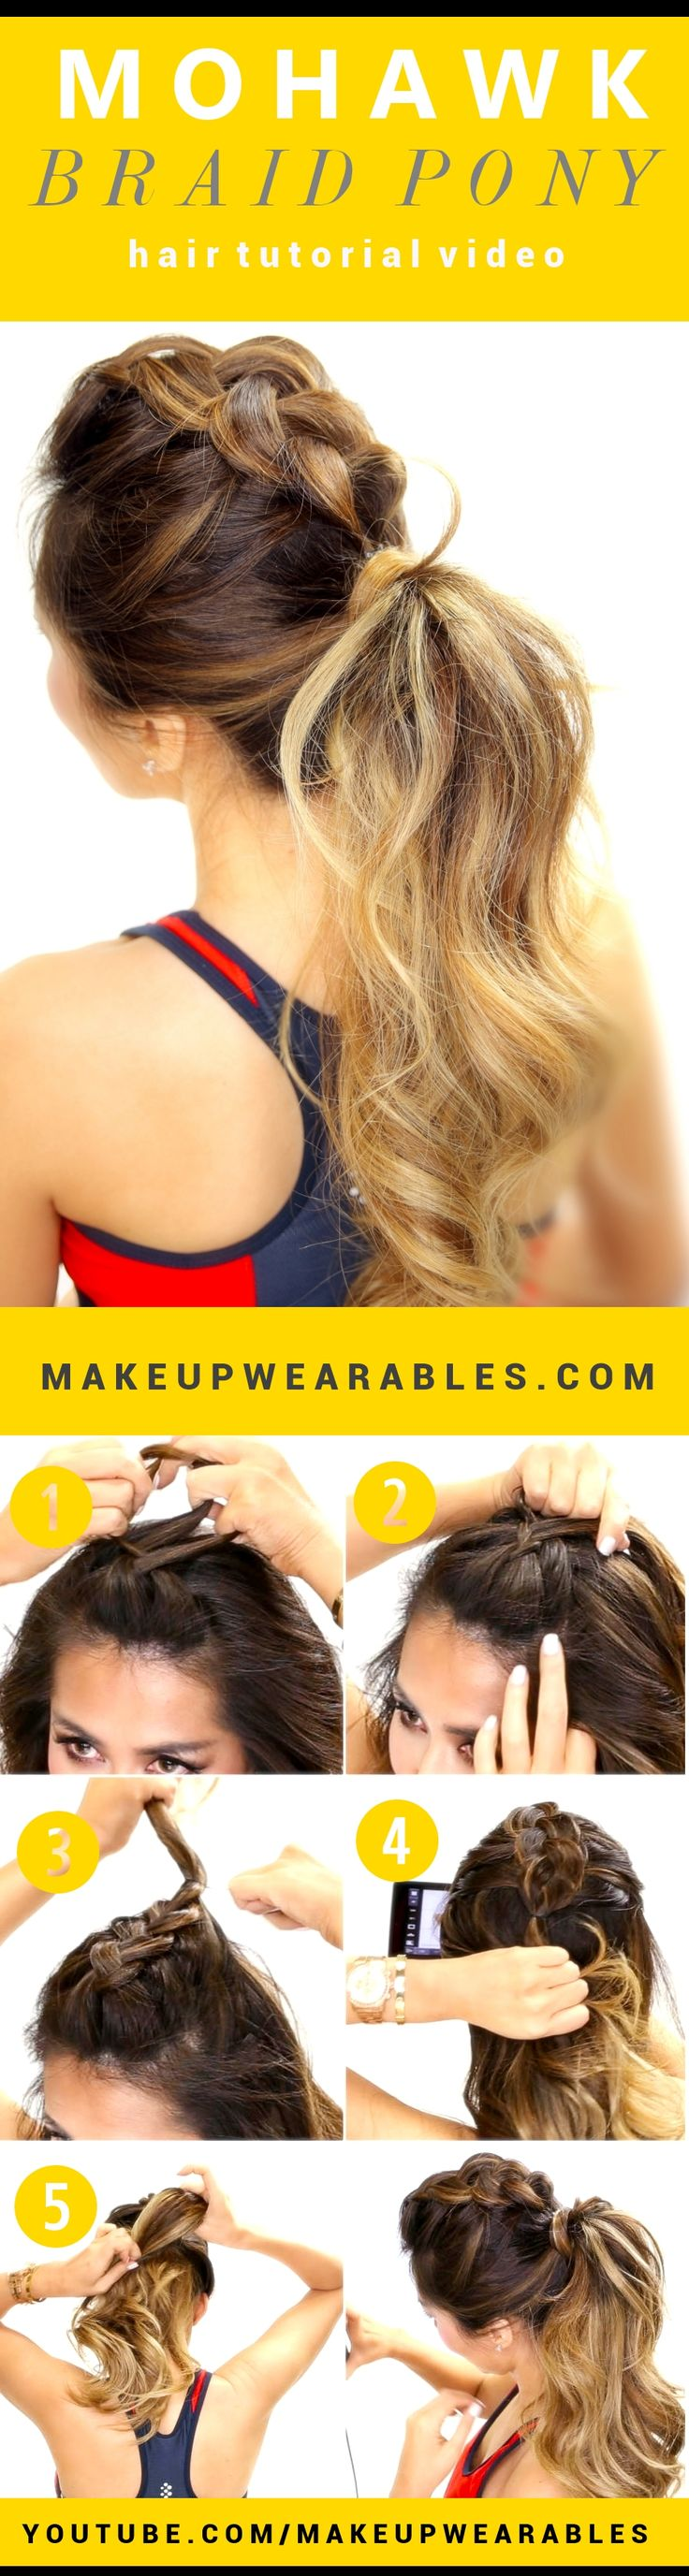 Mohawk Braid Ponytail | Cute